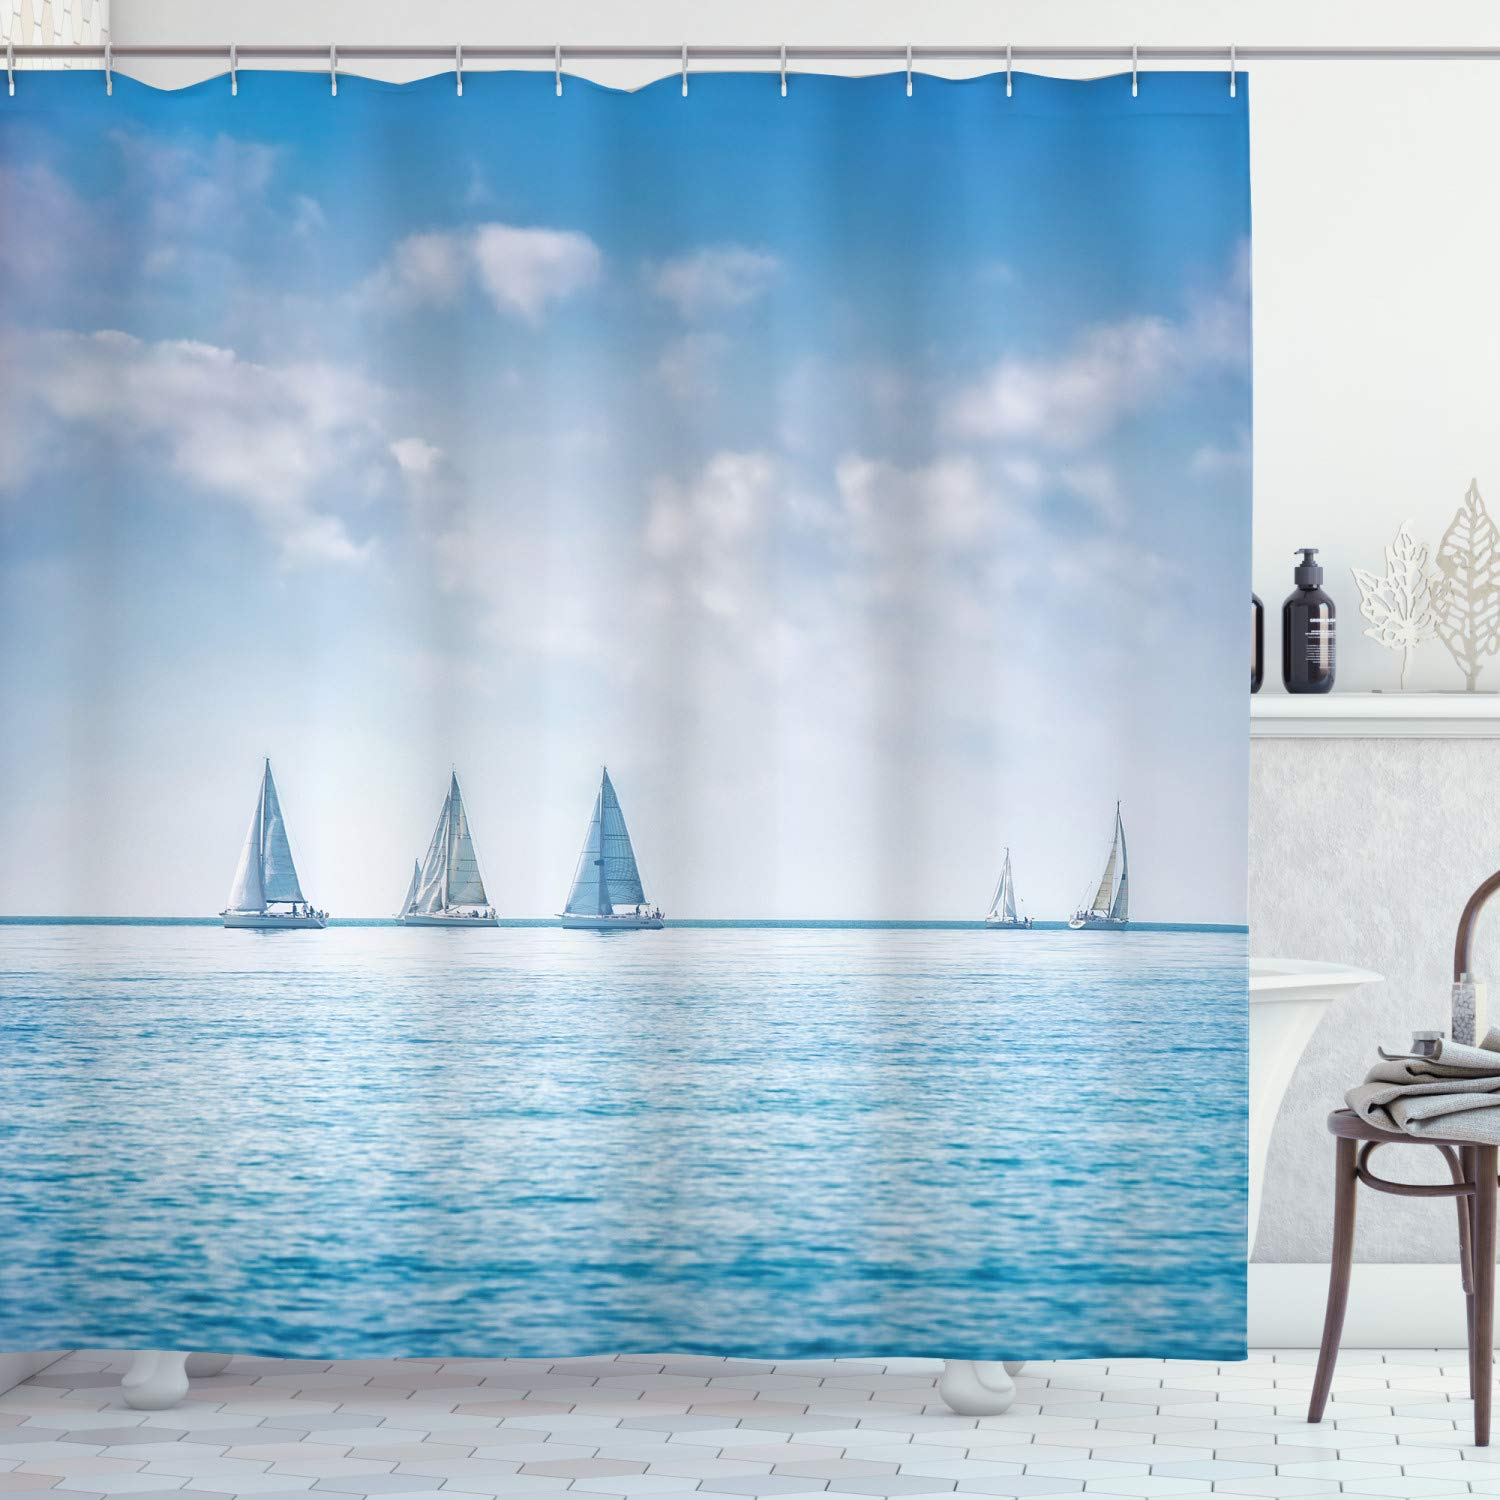 """Ambesonne Ocean Shower Curtain, Sail Boats Sea Regatta Race Sports Panoramic View Seascape Summer Sky Photo, Cloth Fabric Bathroom Decor Set with Hooks, 84"""" Long Extra, Blue White"""